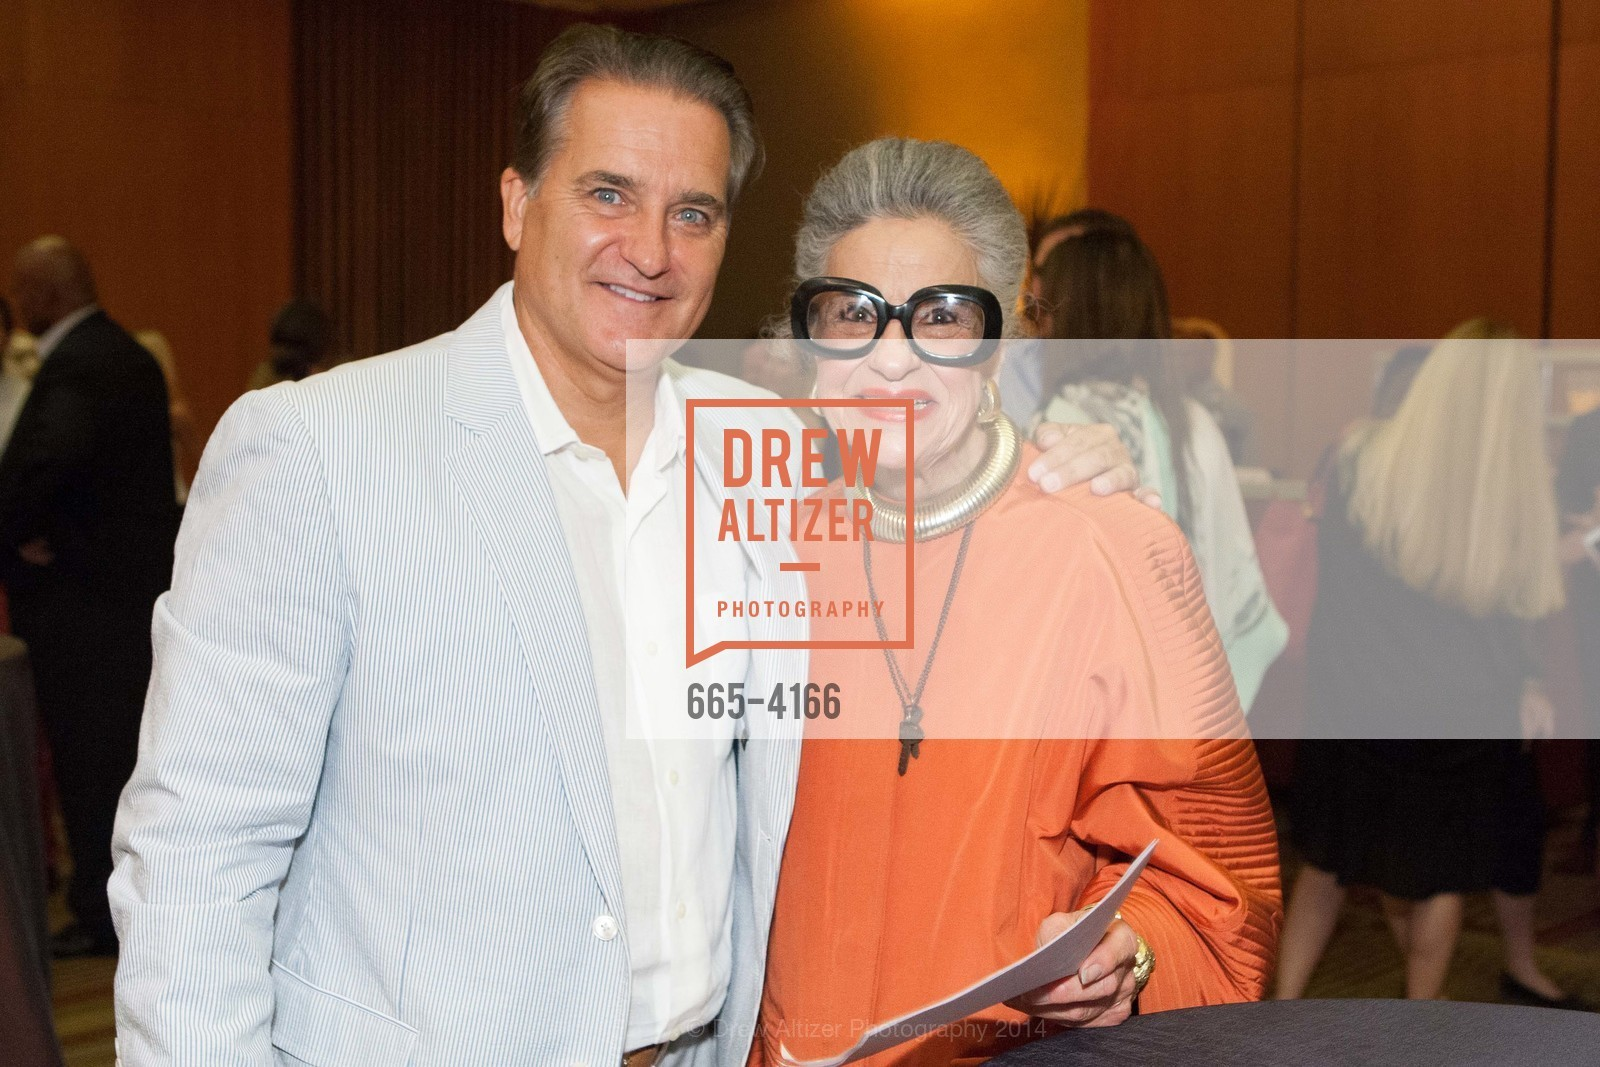 Steve Mariucci, Joy Venturini Bianchi, Photo #665-4166